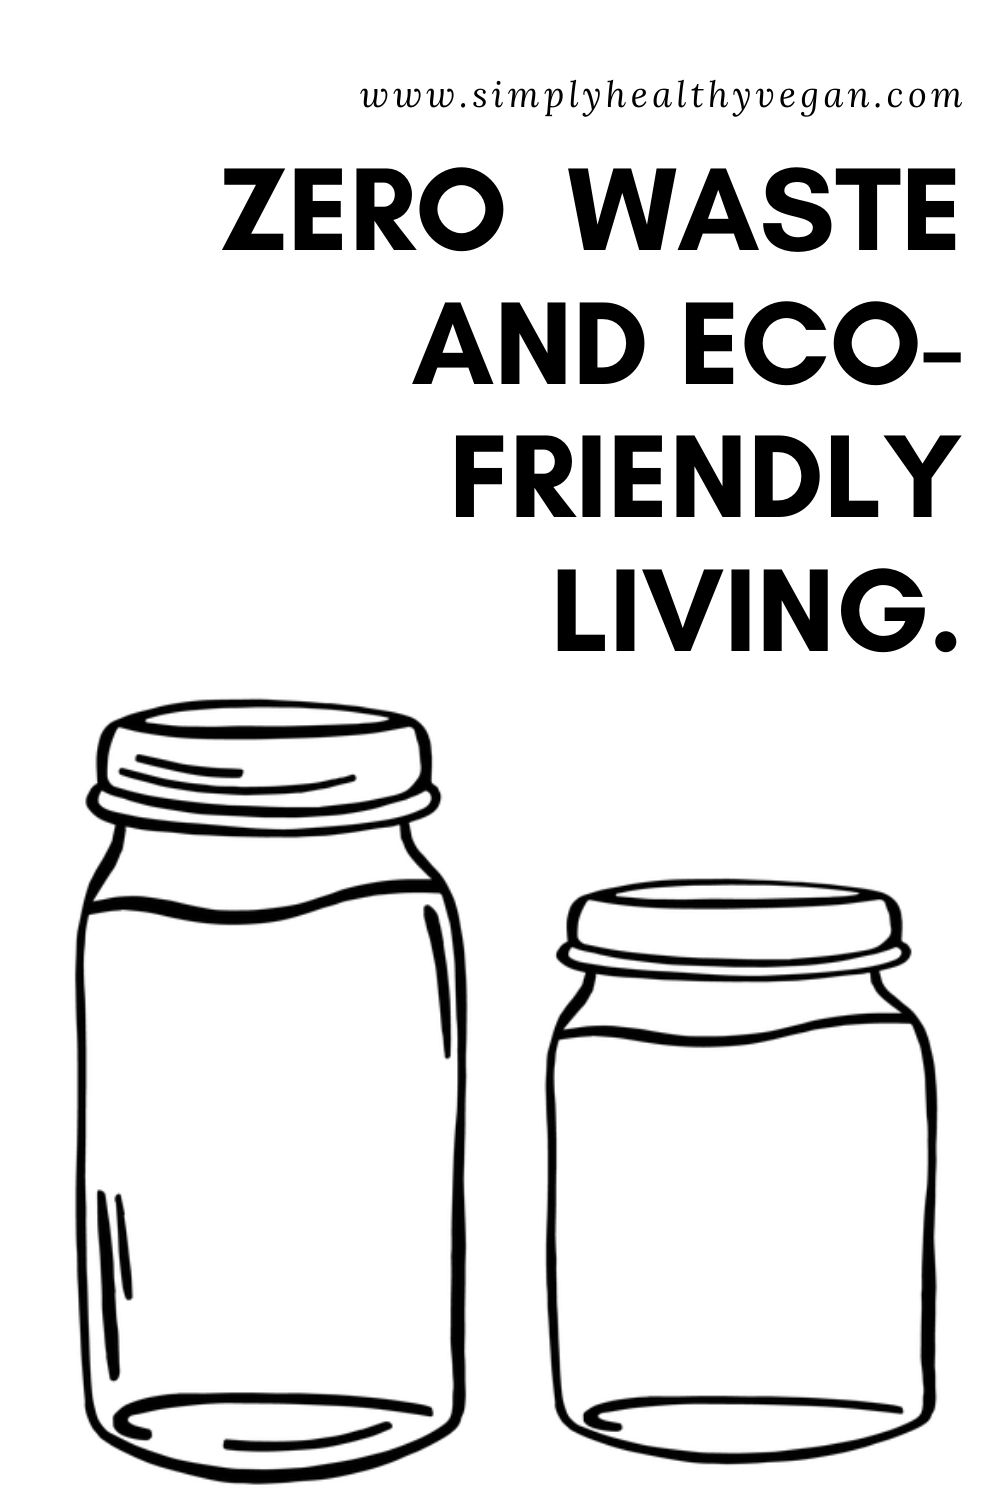 Zero waste and eco-friendly living tips. What you can do to reduce your carbon footprint #ecoliving #ecofriendly #ecolifestyle #wastefree #zerowaste #gogreen